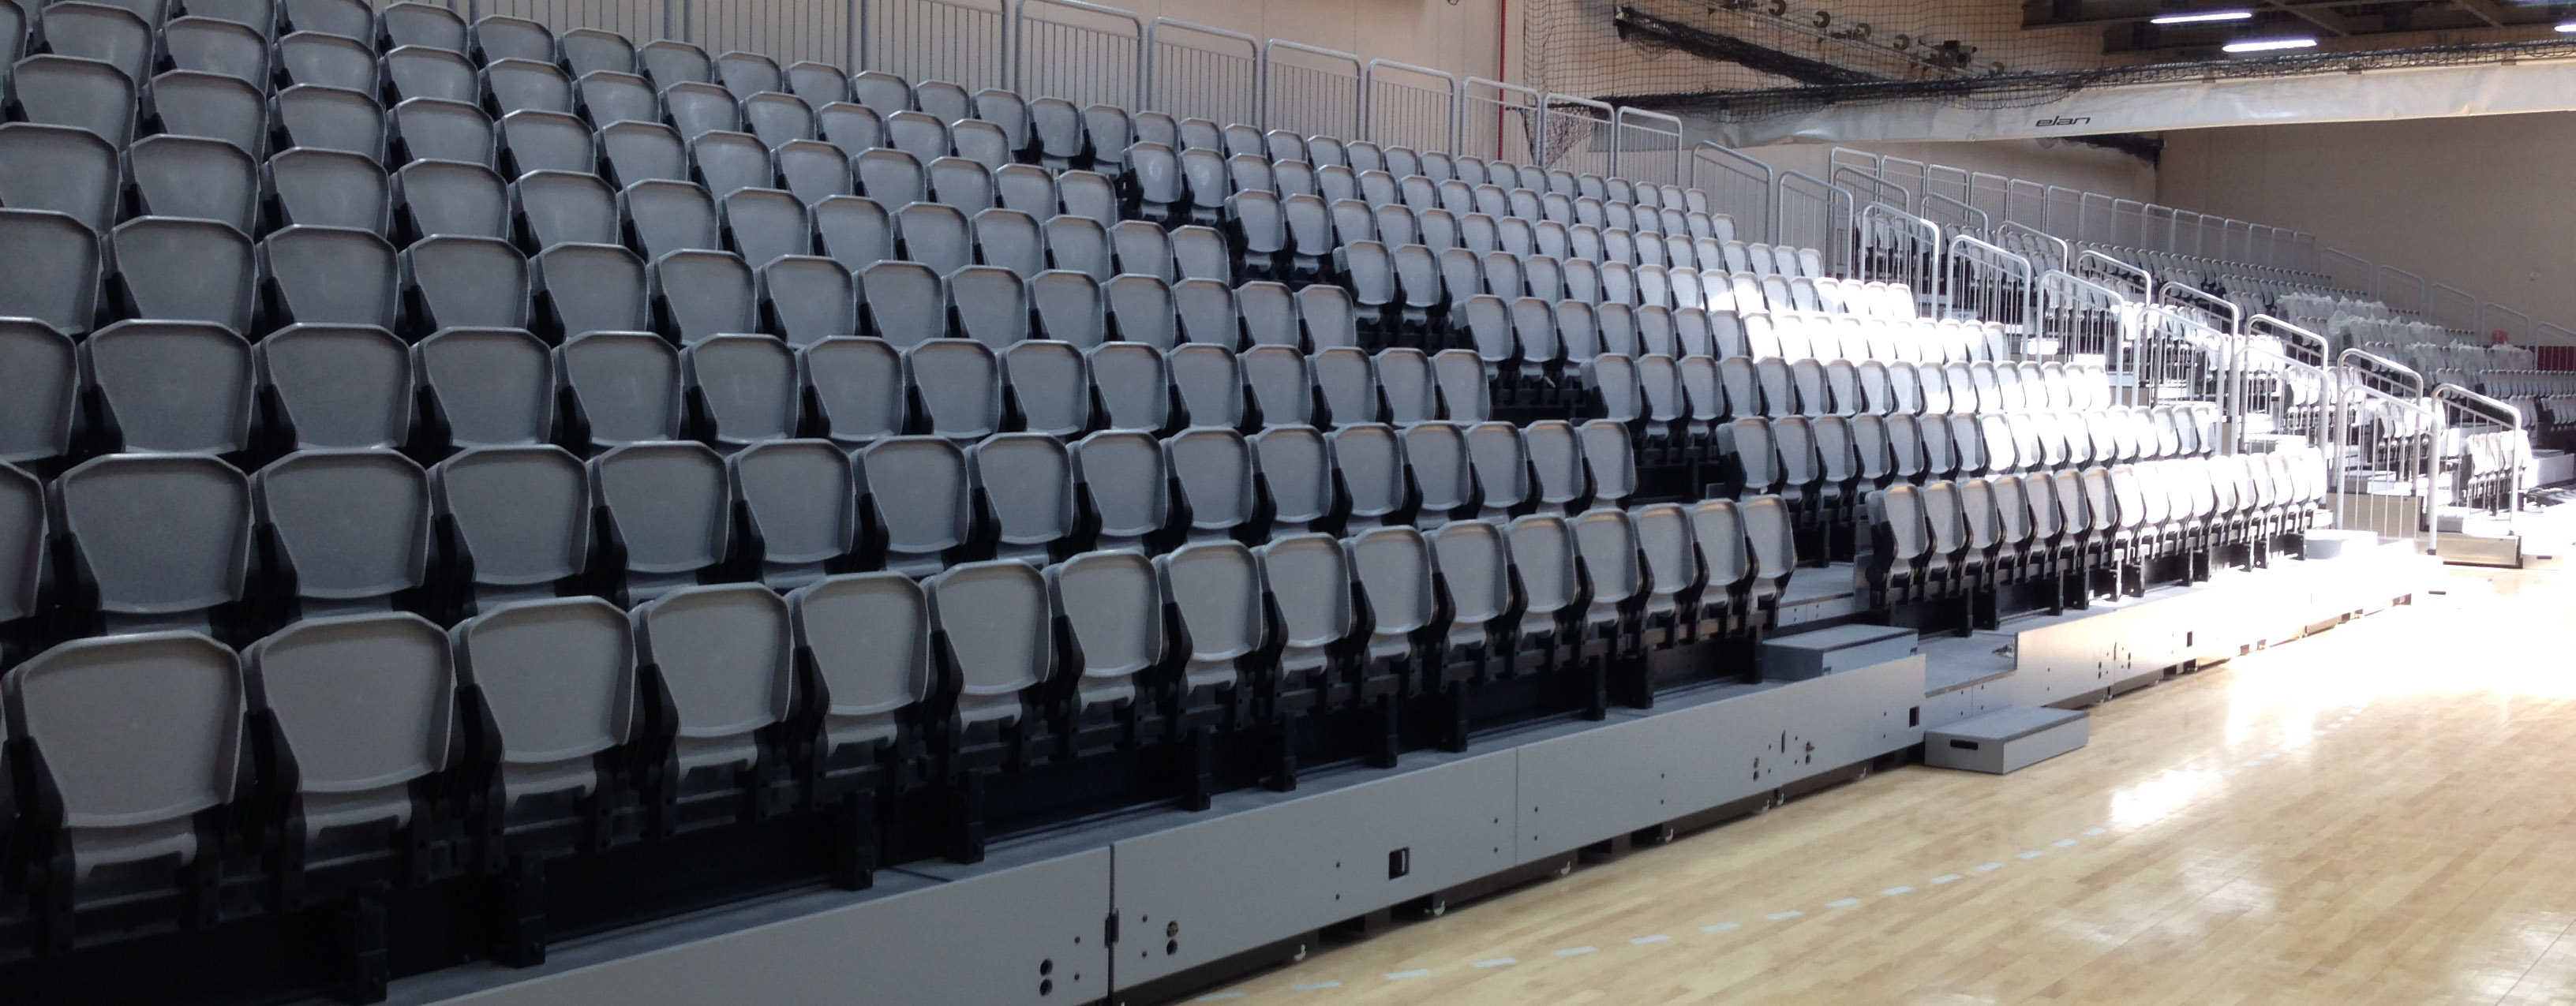 Avatar Retractable Seating